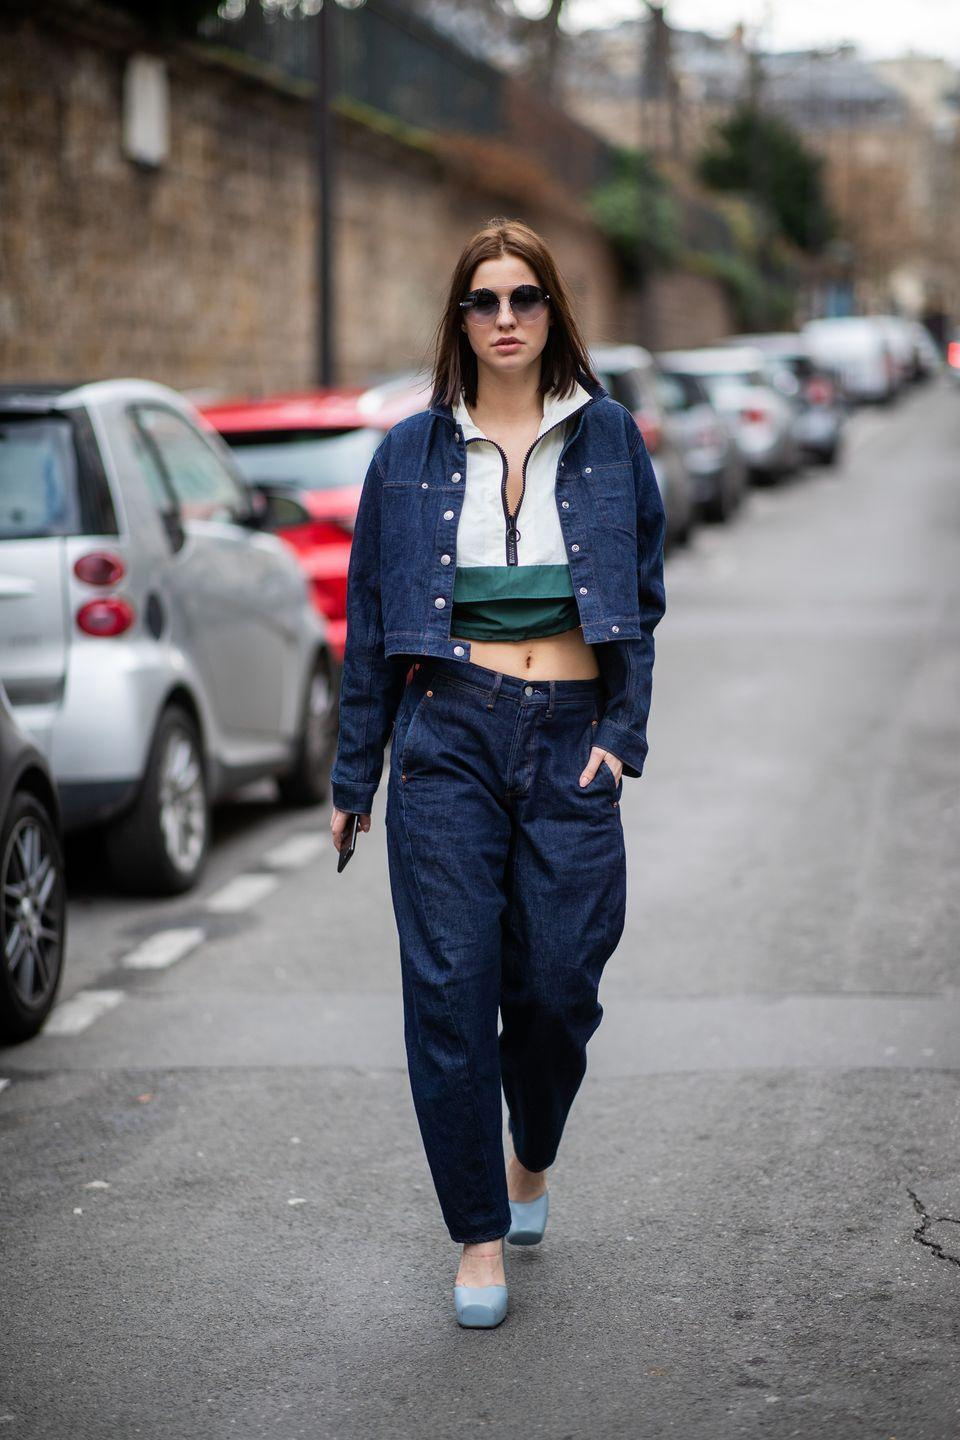 <p>This is the Sporty Spice take on styling the denim trend: an unexpected quarter-zip peeking out from underneath a jean jacket. Pair it with a baggy pair of jeans to nail the cool-girl aesthetic.</p>